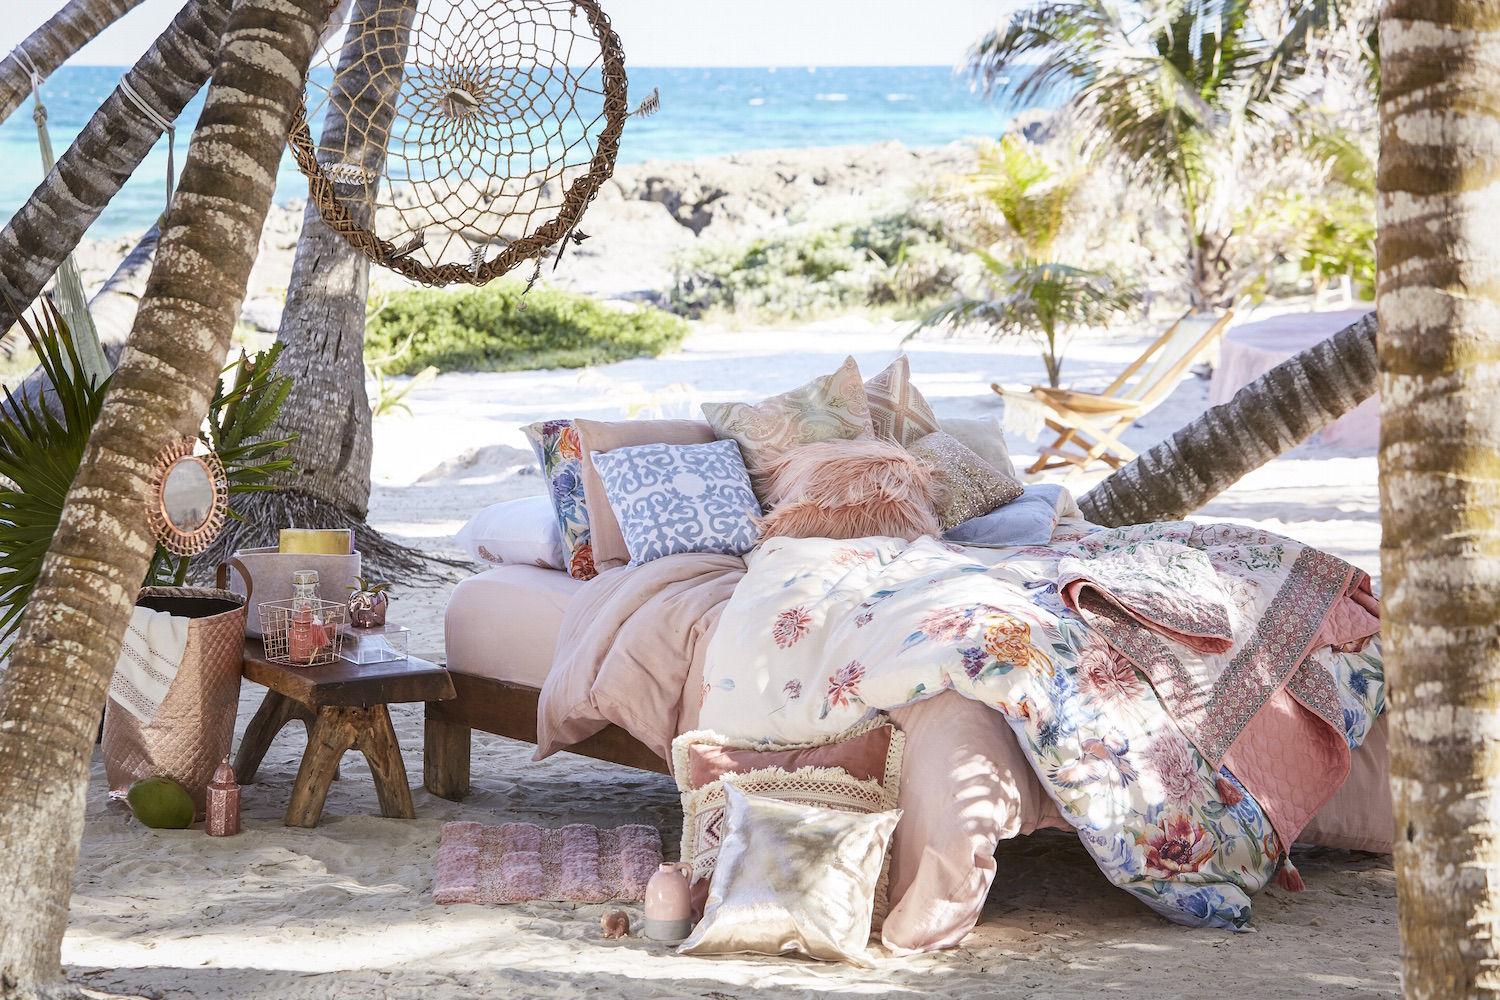 Primark Lazy Summer Bedroom_DBO_0033_Basef1.jpg